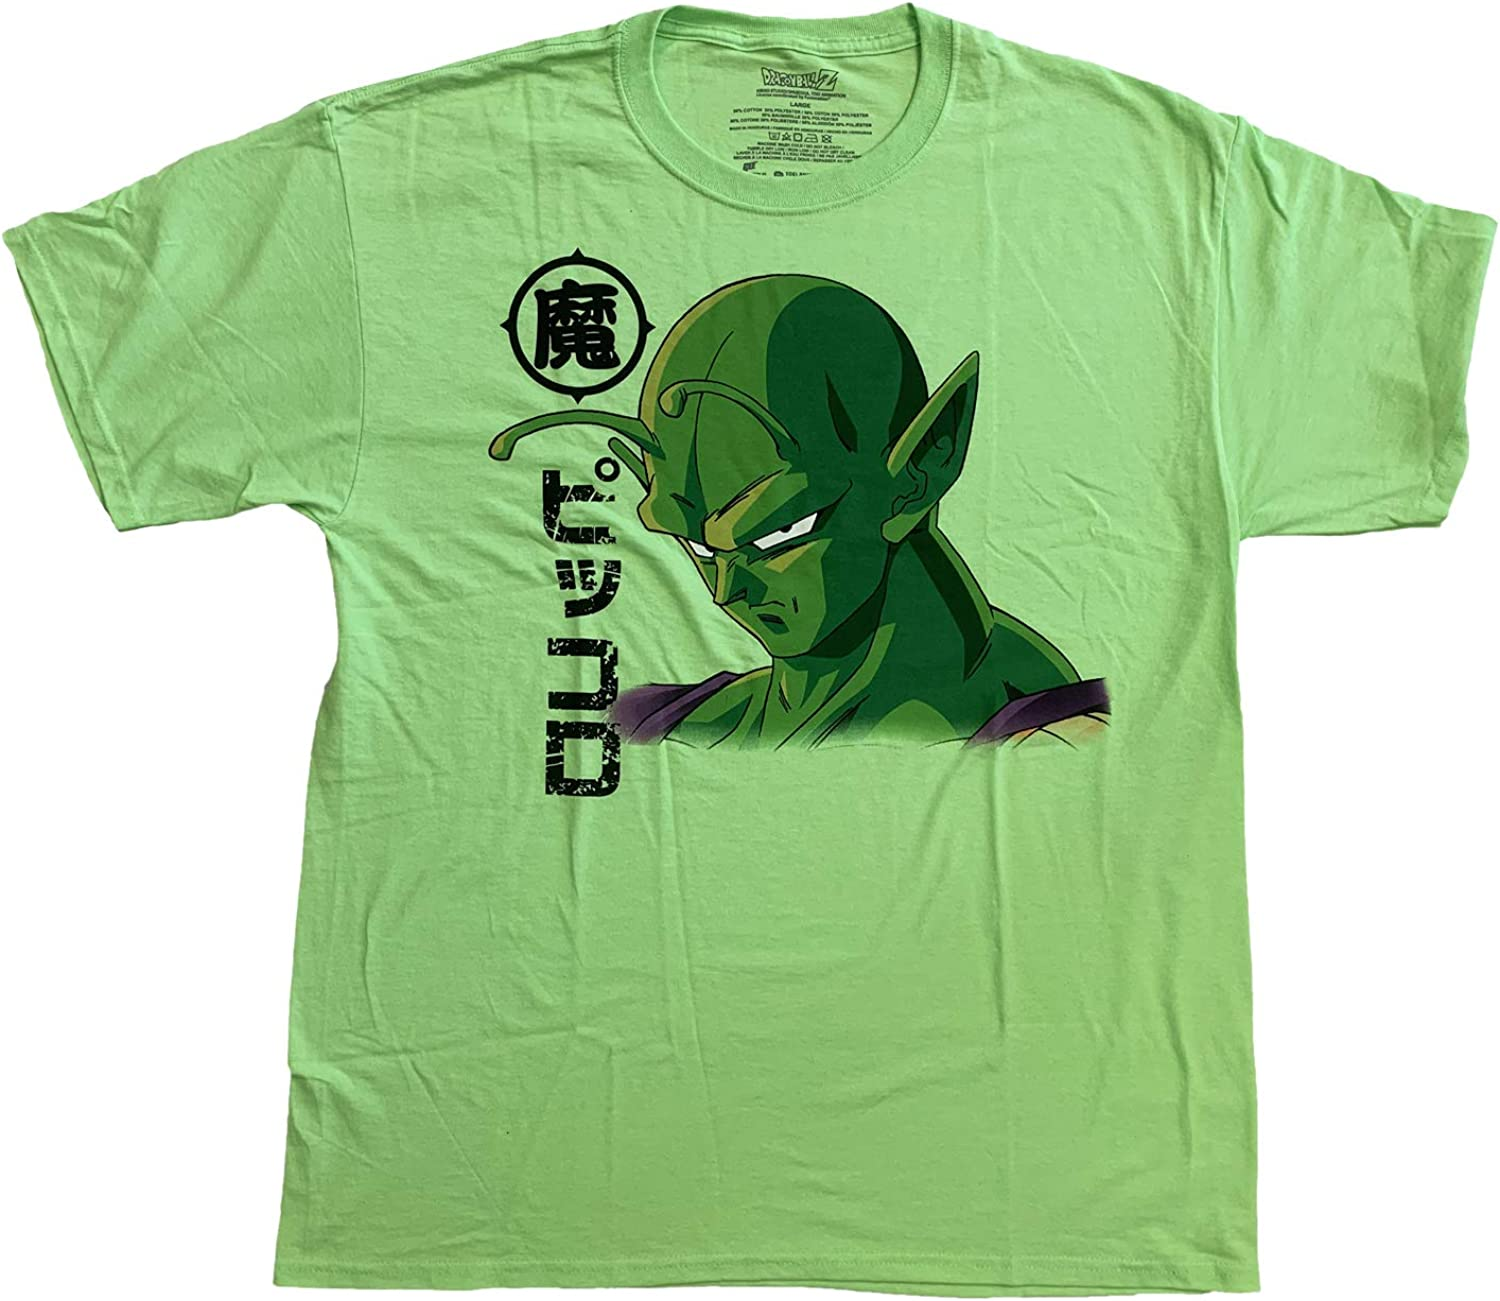 Dragon Ball Z Piccolo 5 ☆ popular Special price for a limited time Japanese T-Shirt Officially Licensed Adult